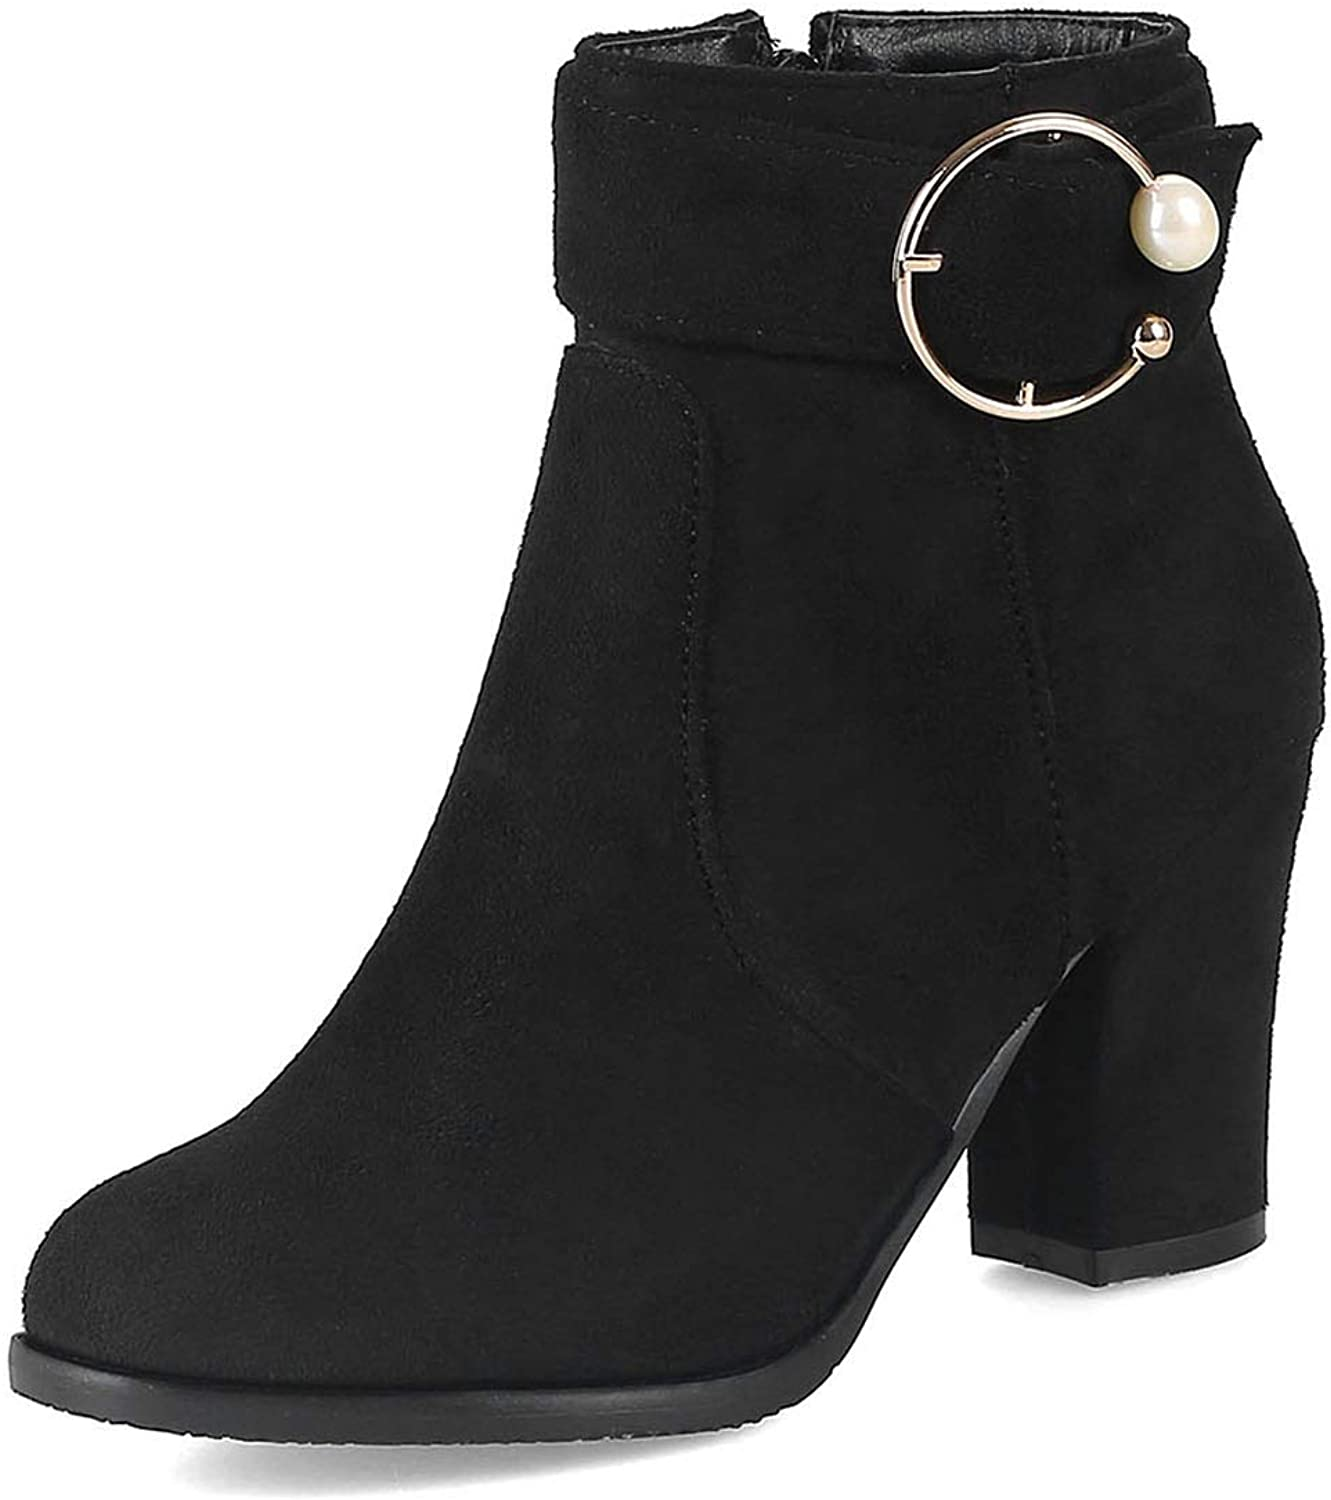 Women's Booties, Thick Heel High Heel Elastic Force Ankle Boots Ladies New Non Slip Side Zipper Fashion Boots (color   Black Thin Velvet, Size   37)